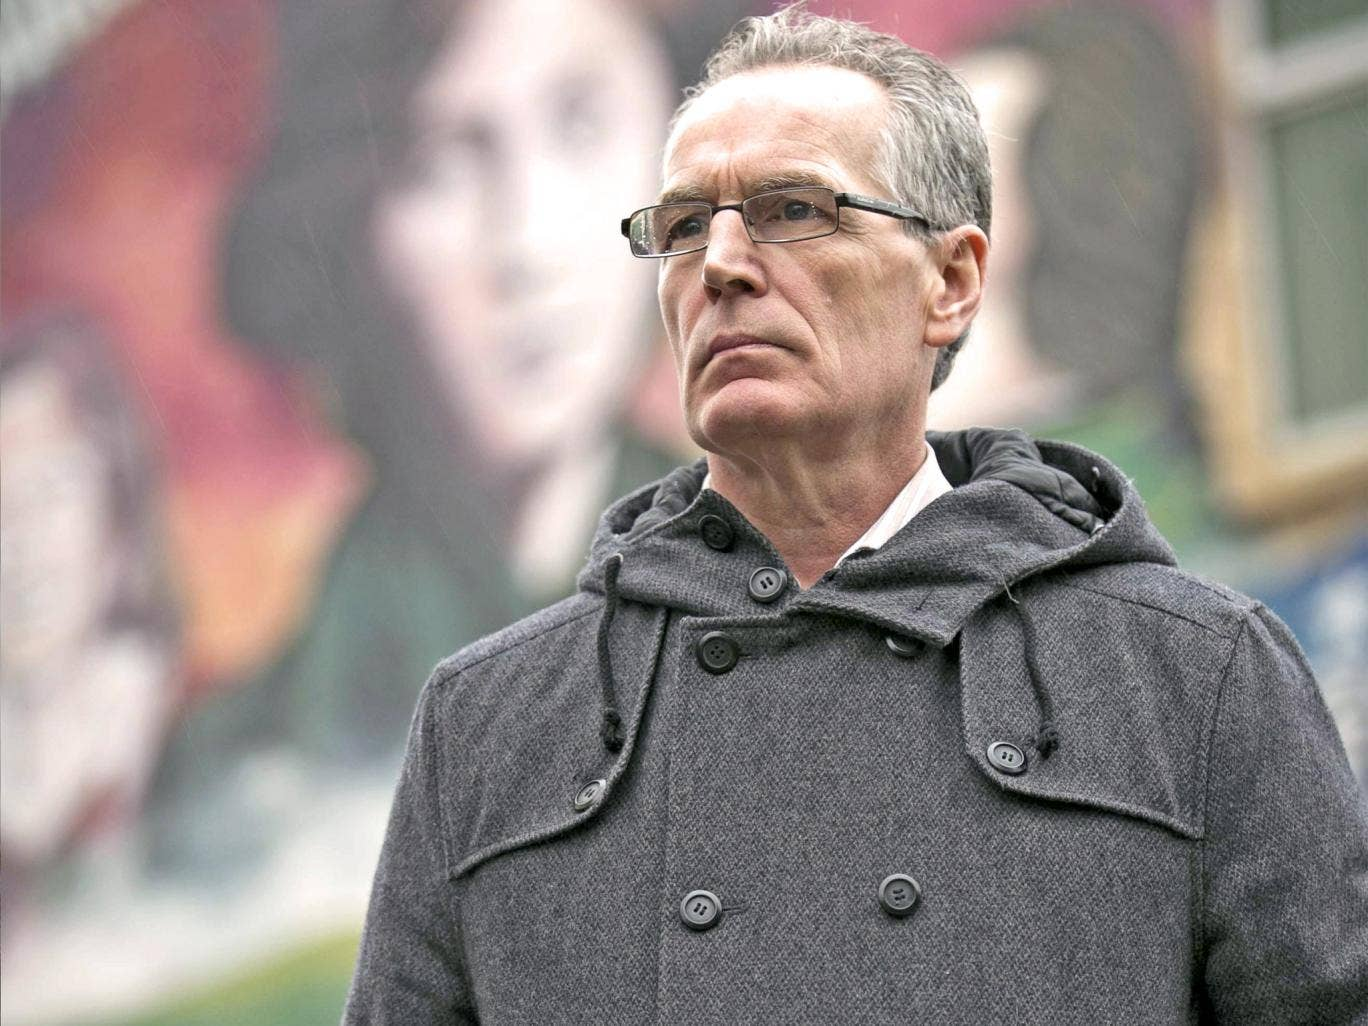 Gerry Kelly is now a member of the Northern Ireland Policing Board and once had responsibility for the now derelict Maze prison